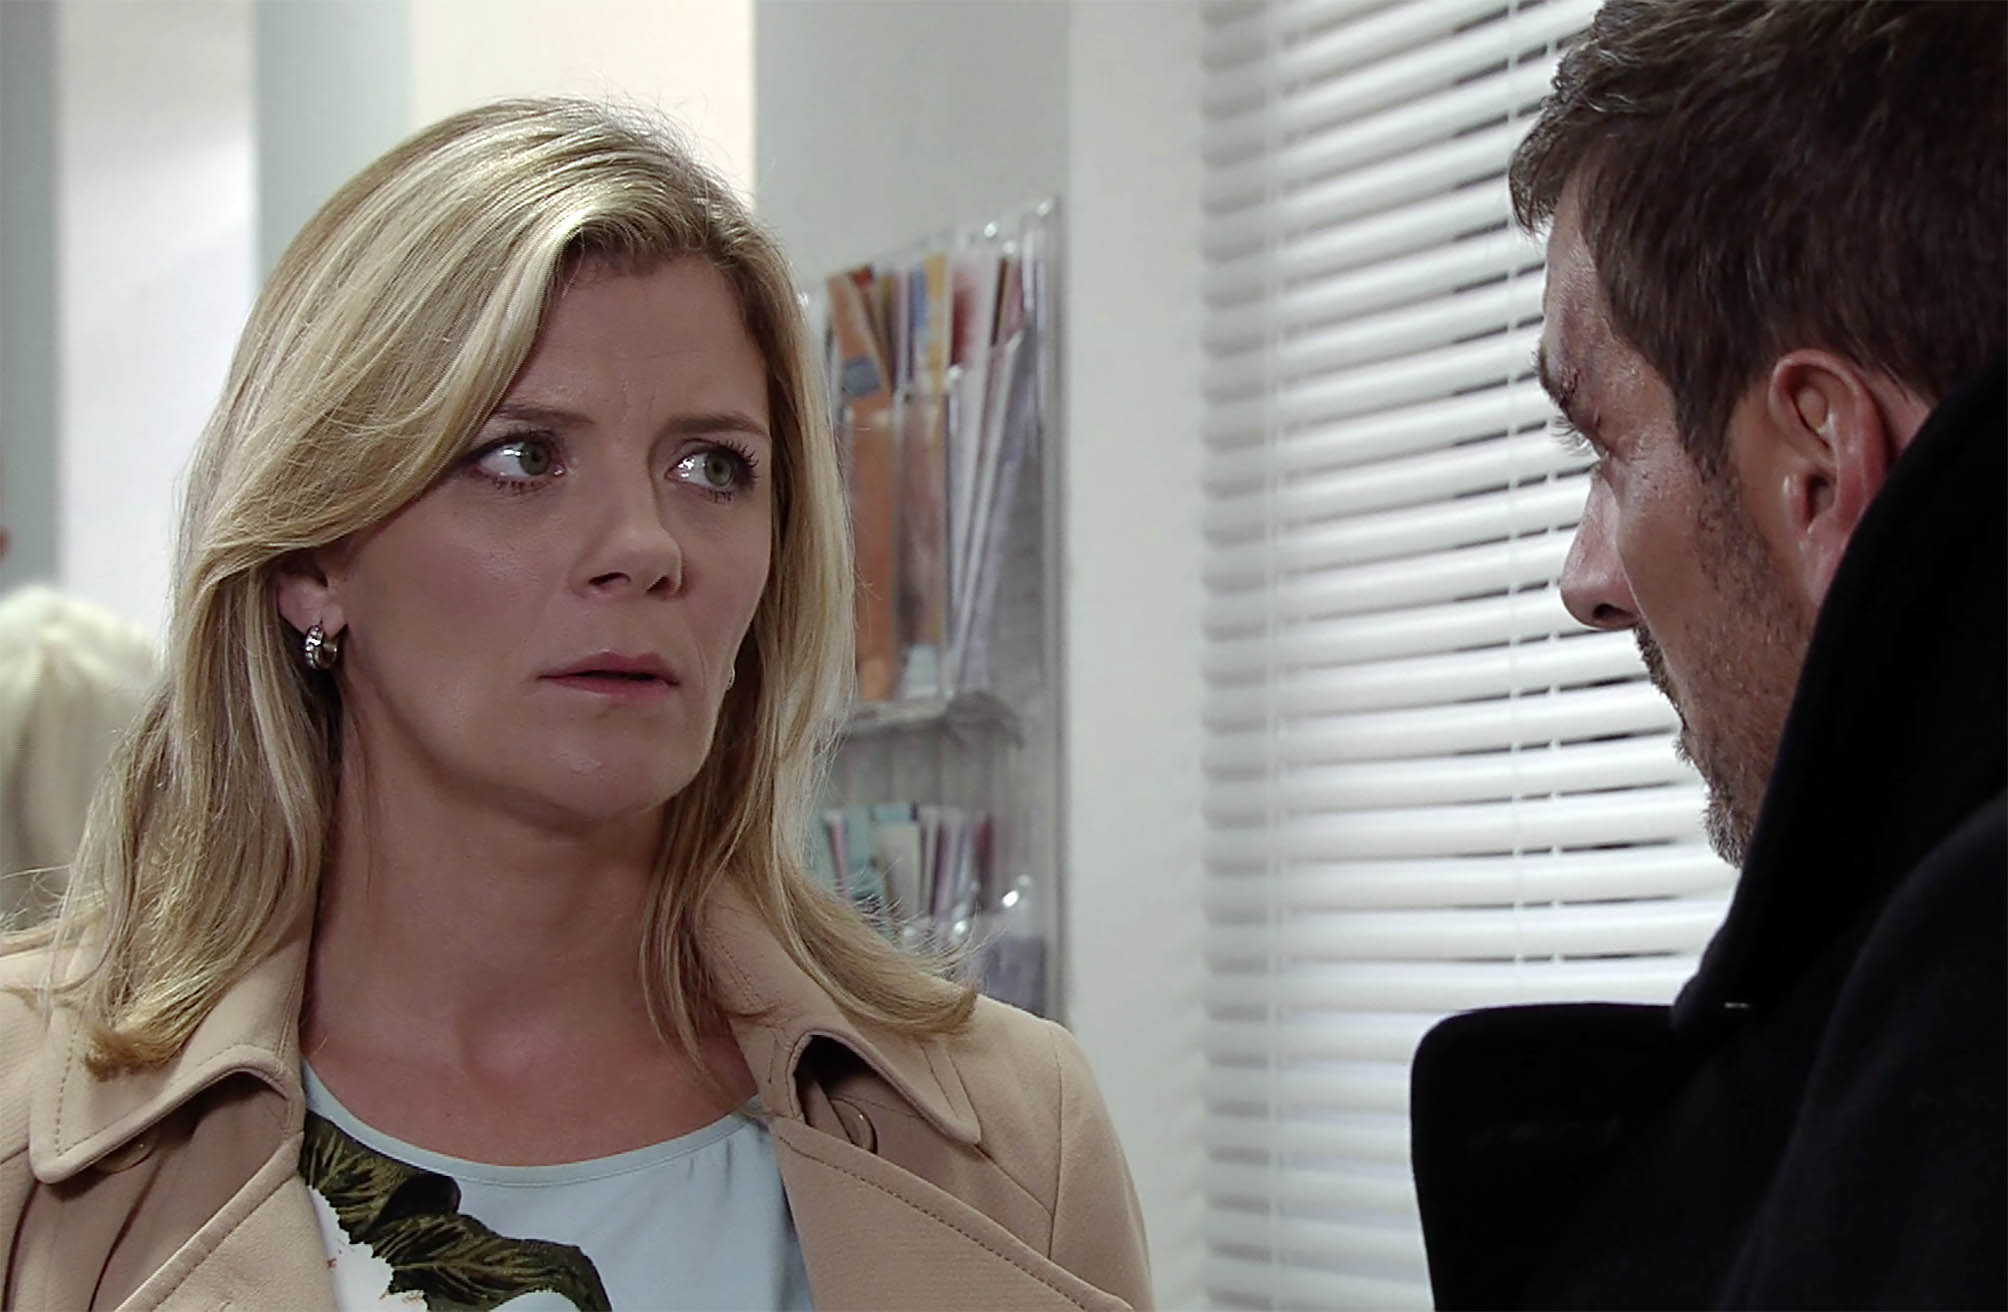 FROM ITV STRICT EMBARGO - NO USE BEFORE TUESDAY 11 OCTOBER 2016 Coronation Street - Ep 9017 Friday 21 October 2016 - 1st Ep Leanne Tilsley in a manner which alters the visual appearance of the person photographed deemed detrimental or inappropriate by ITV plc Picture Desk. This photograph must not be syndicated to any other company, publication or website, or permanently archived, without the express written permission of ITV Plc Picture Desk. Full Terms and conditions are available on the website www.itvpictures.com